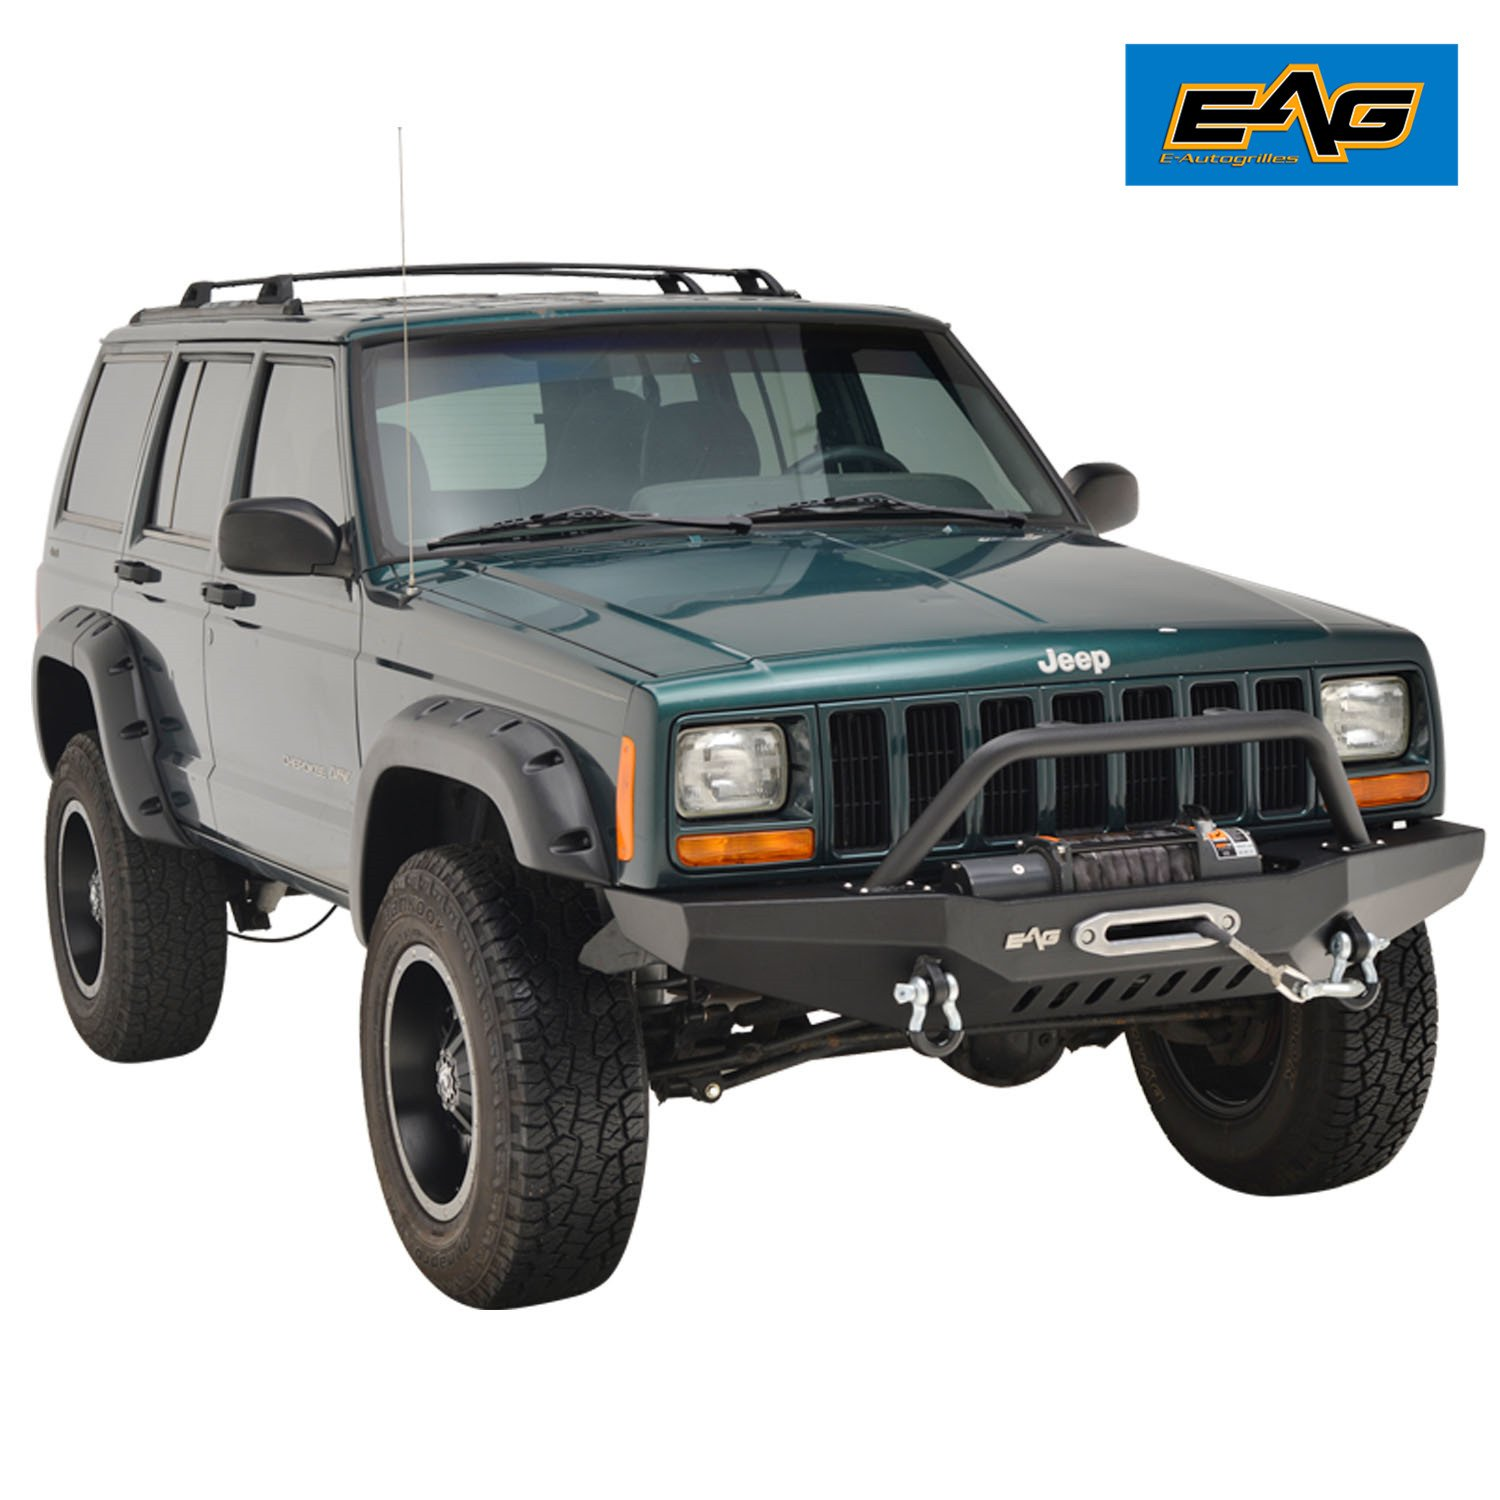 Eag Off Road Front Bumper With Winch Plate For 1984 2001 1999 Jeep Cherokee Forum Xj Automotive